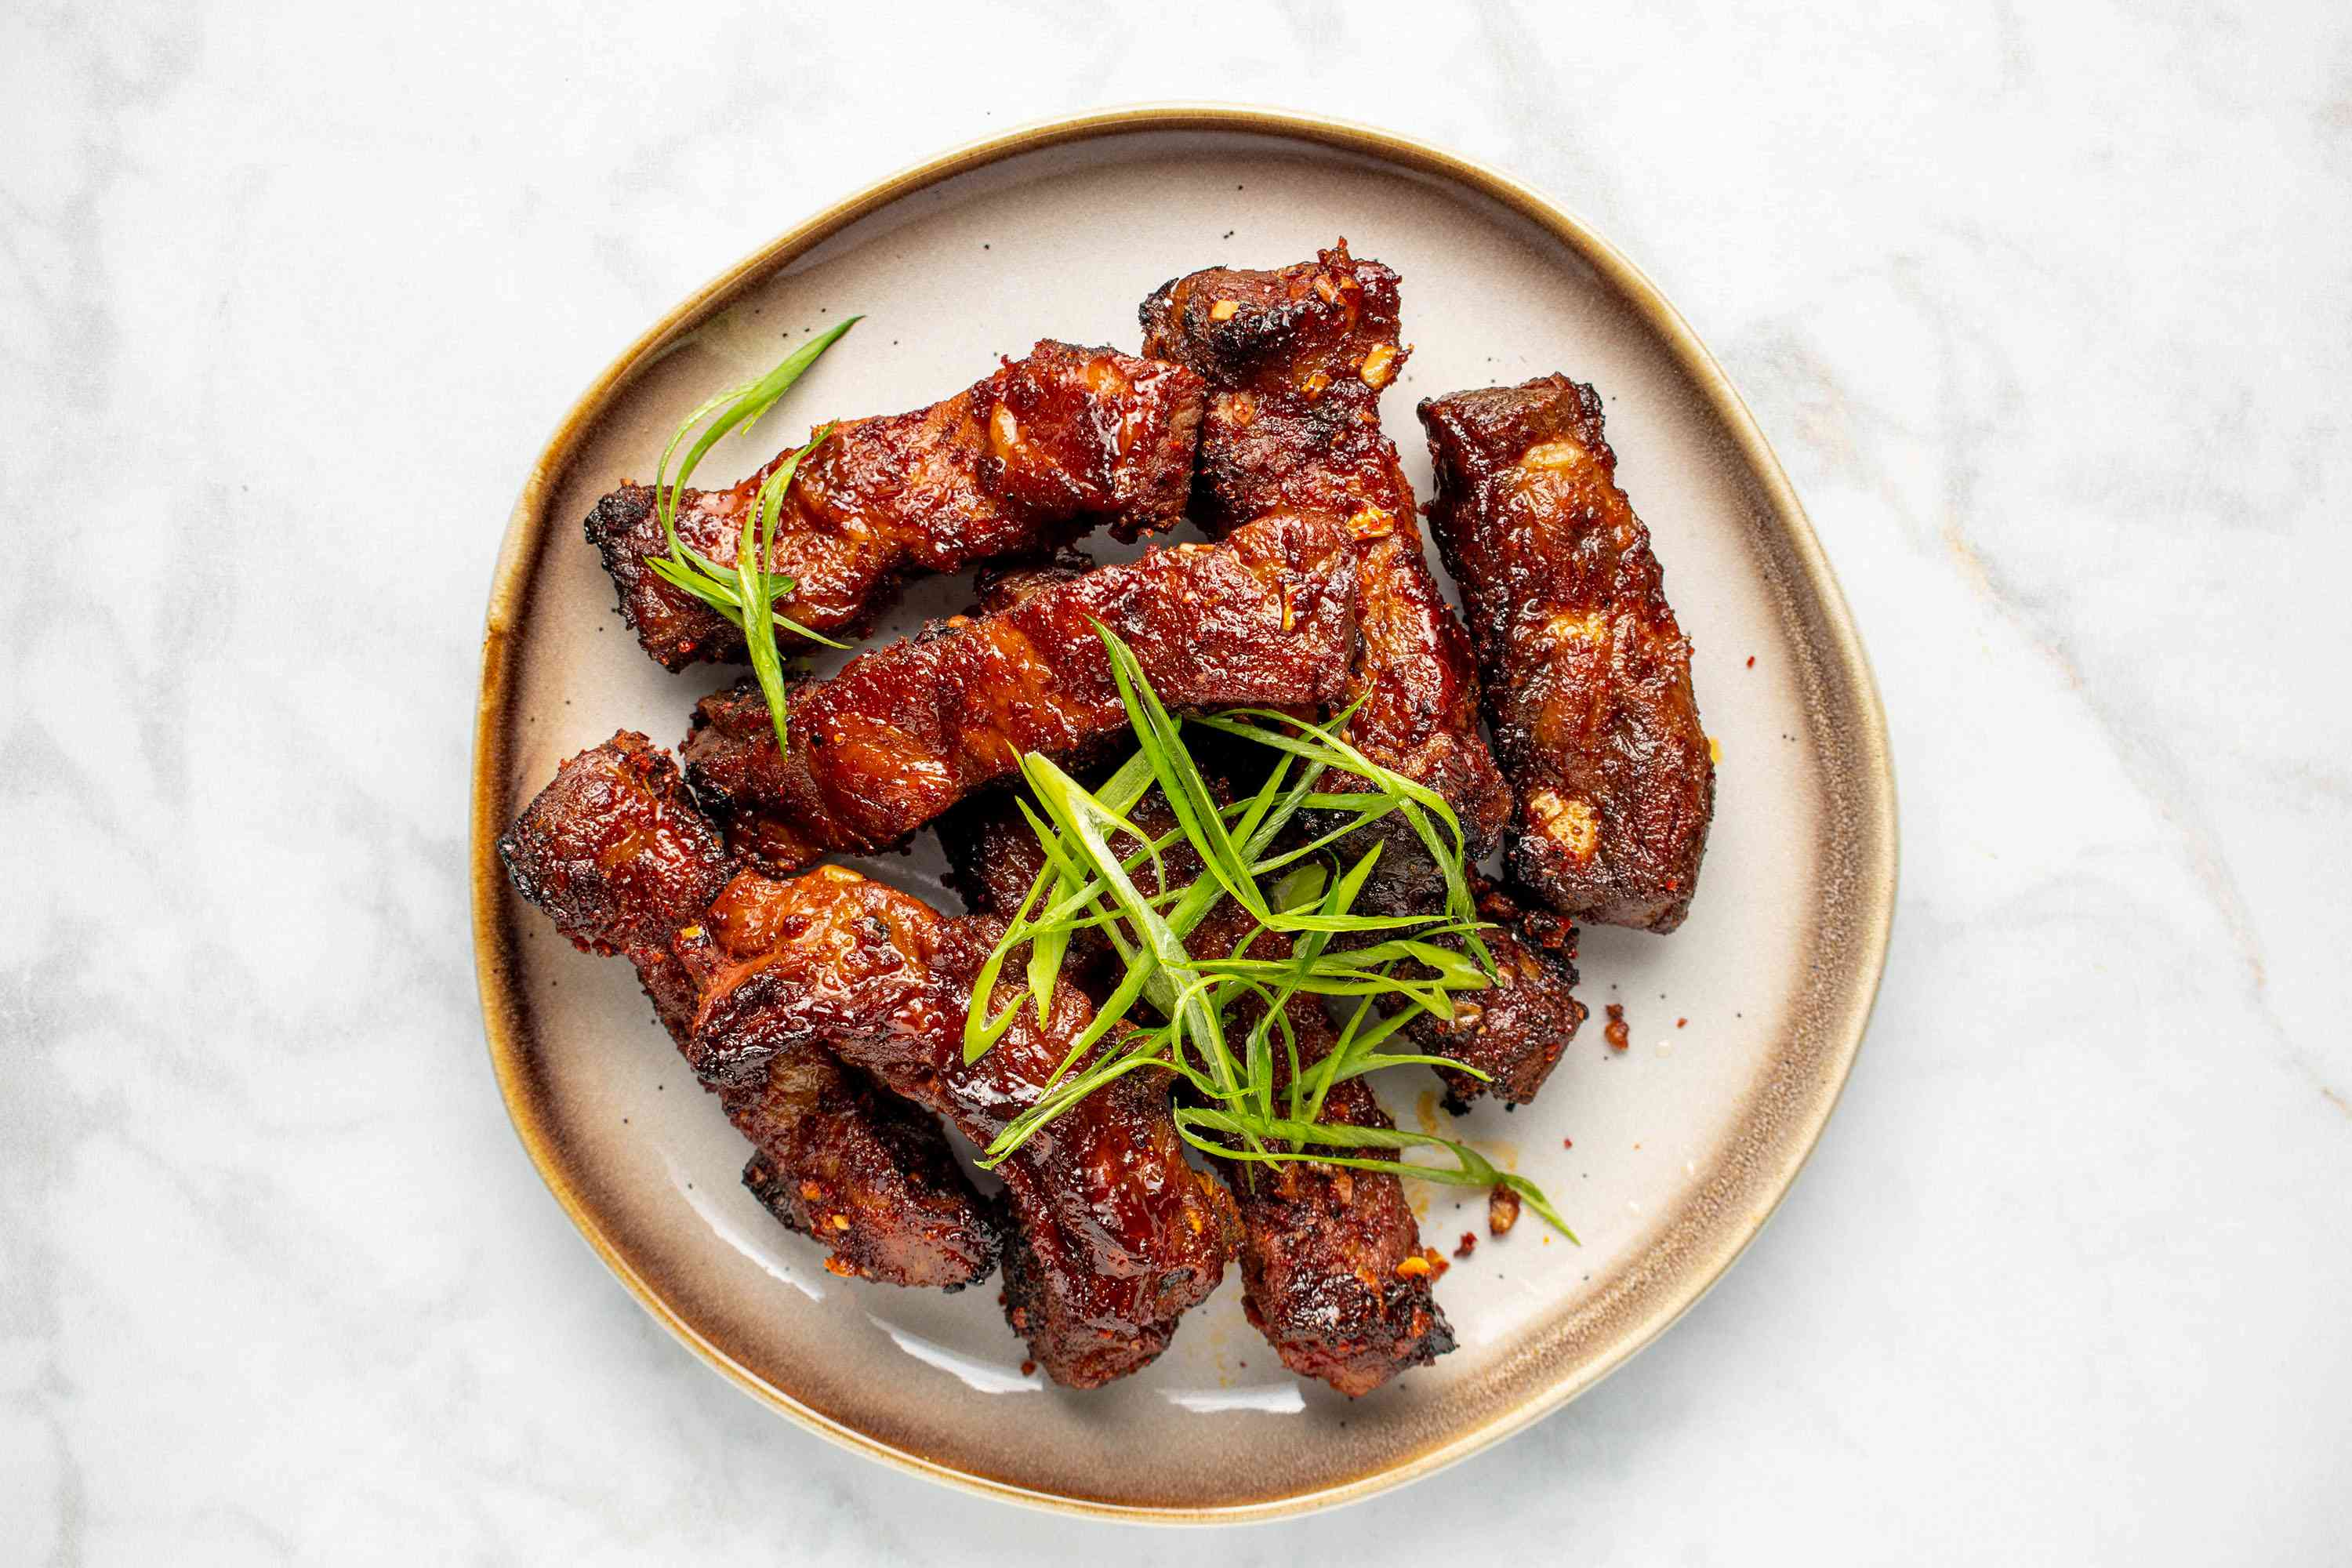 Korean Sweet and Spicy Pork Spareribs on a plate